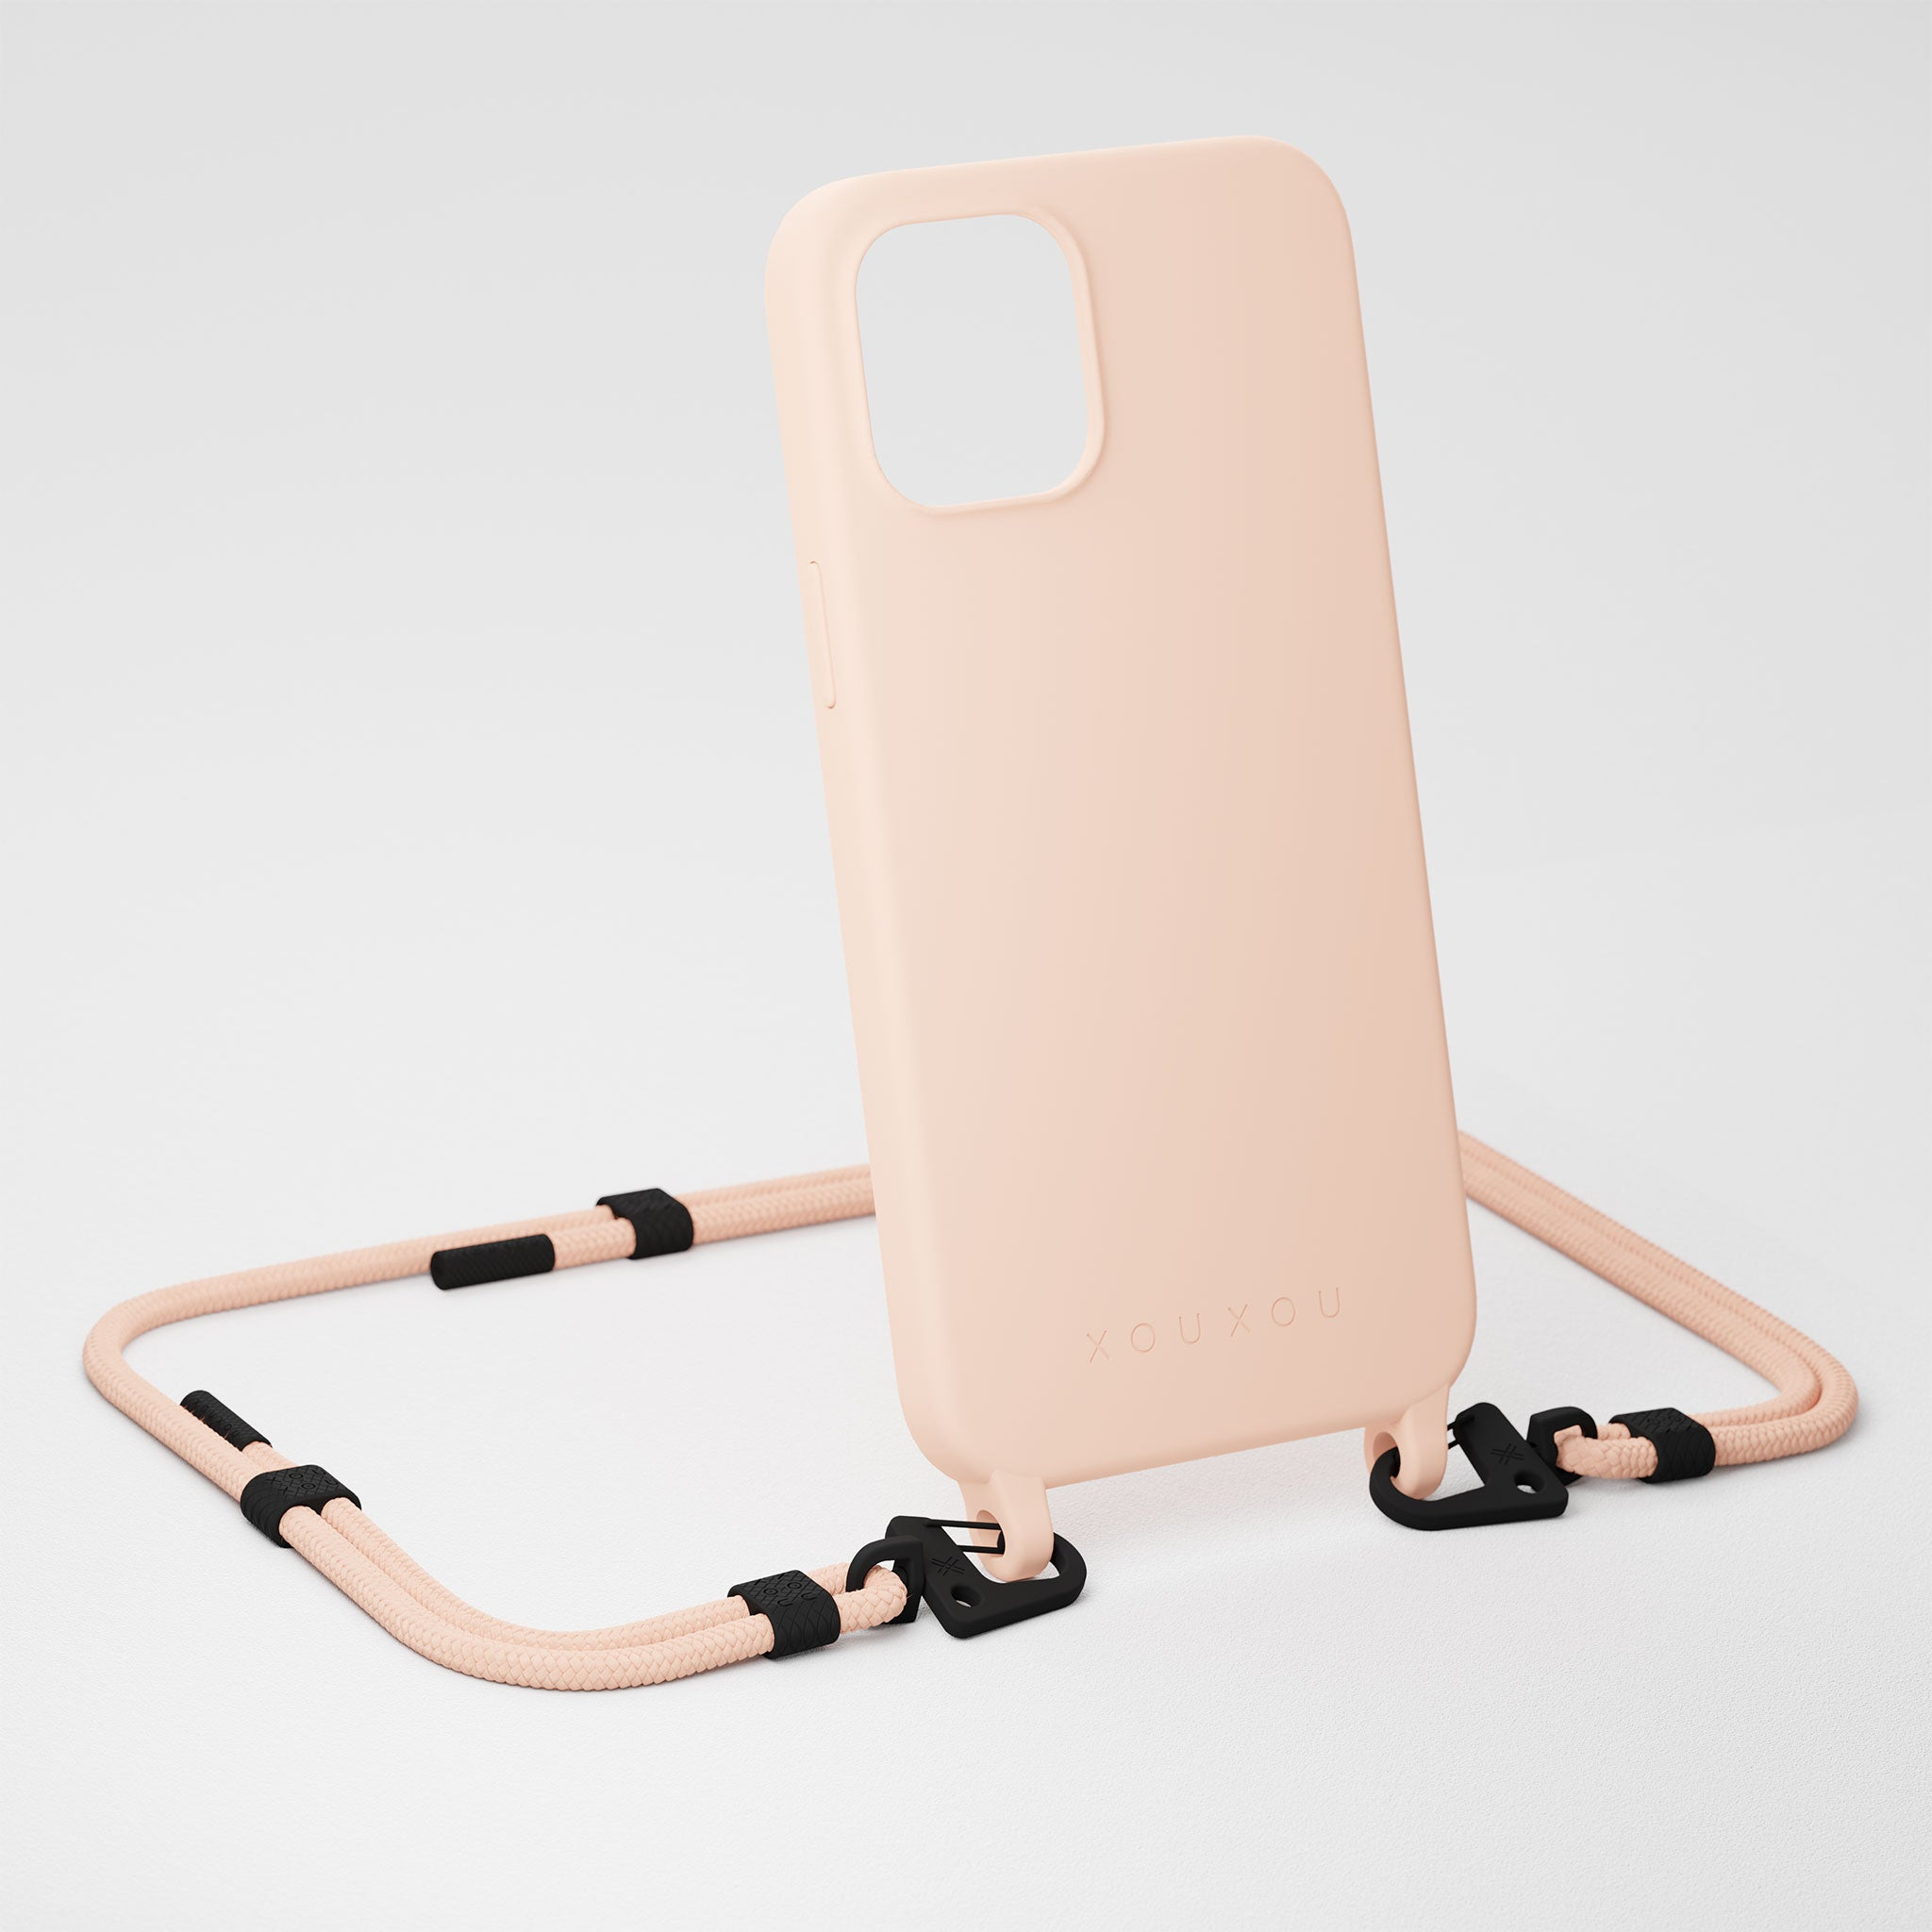 Powder Pink Silicone Case + Carabiner Rope